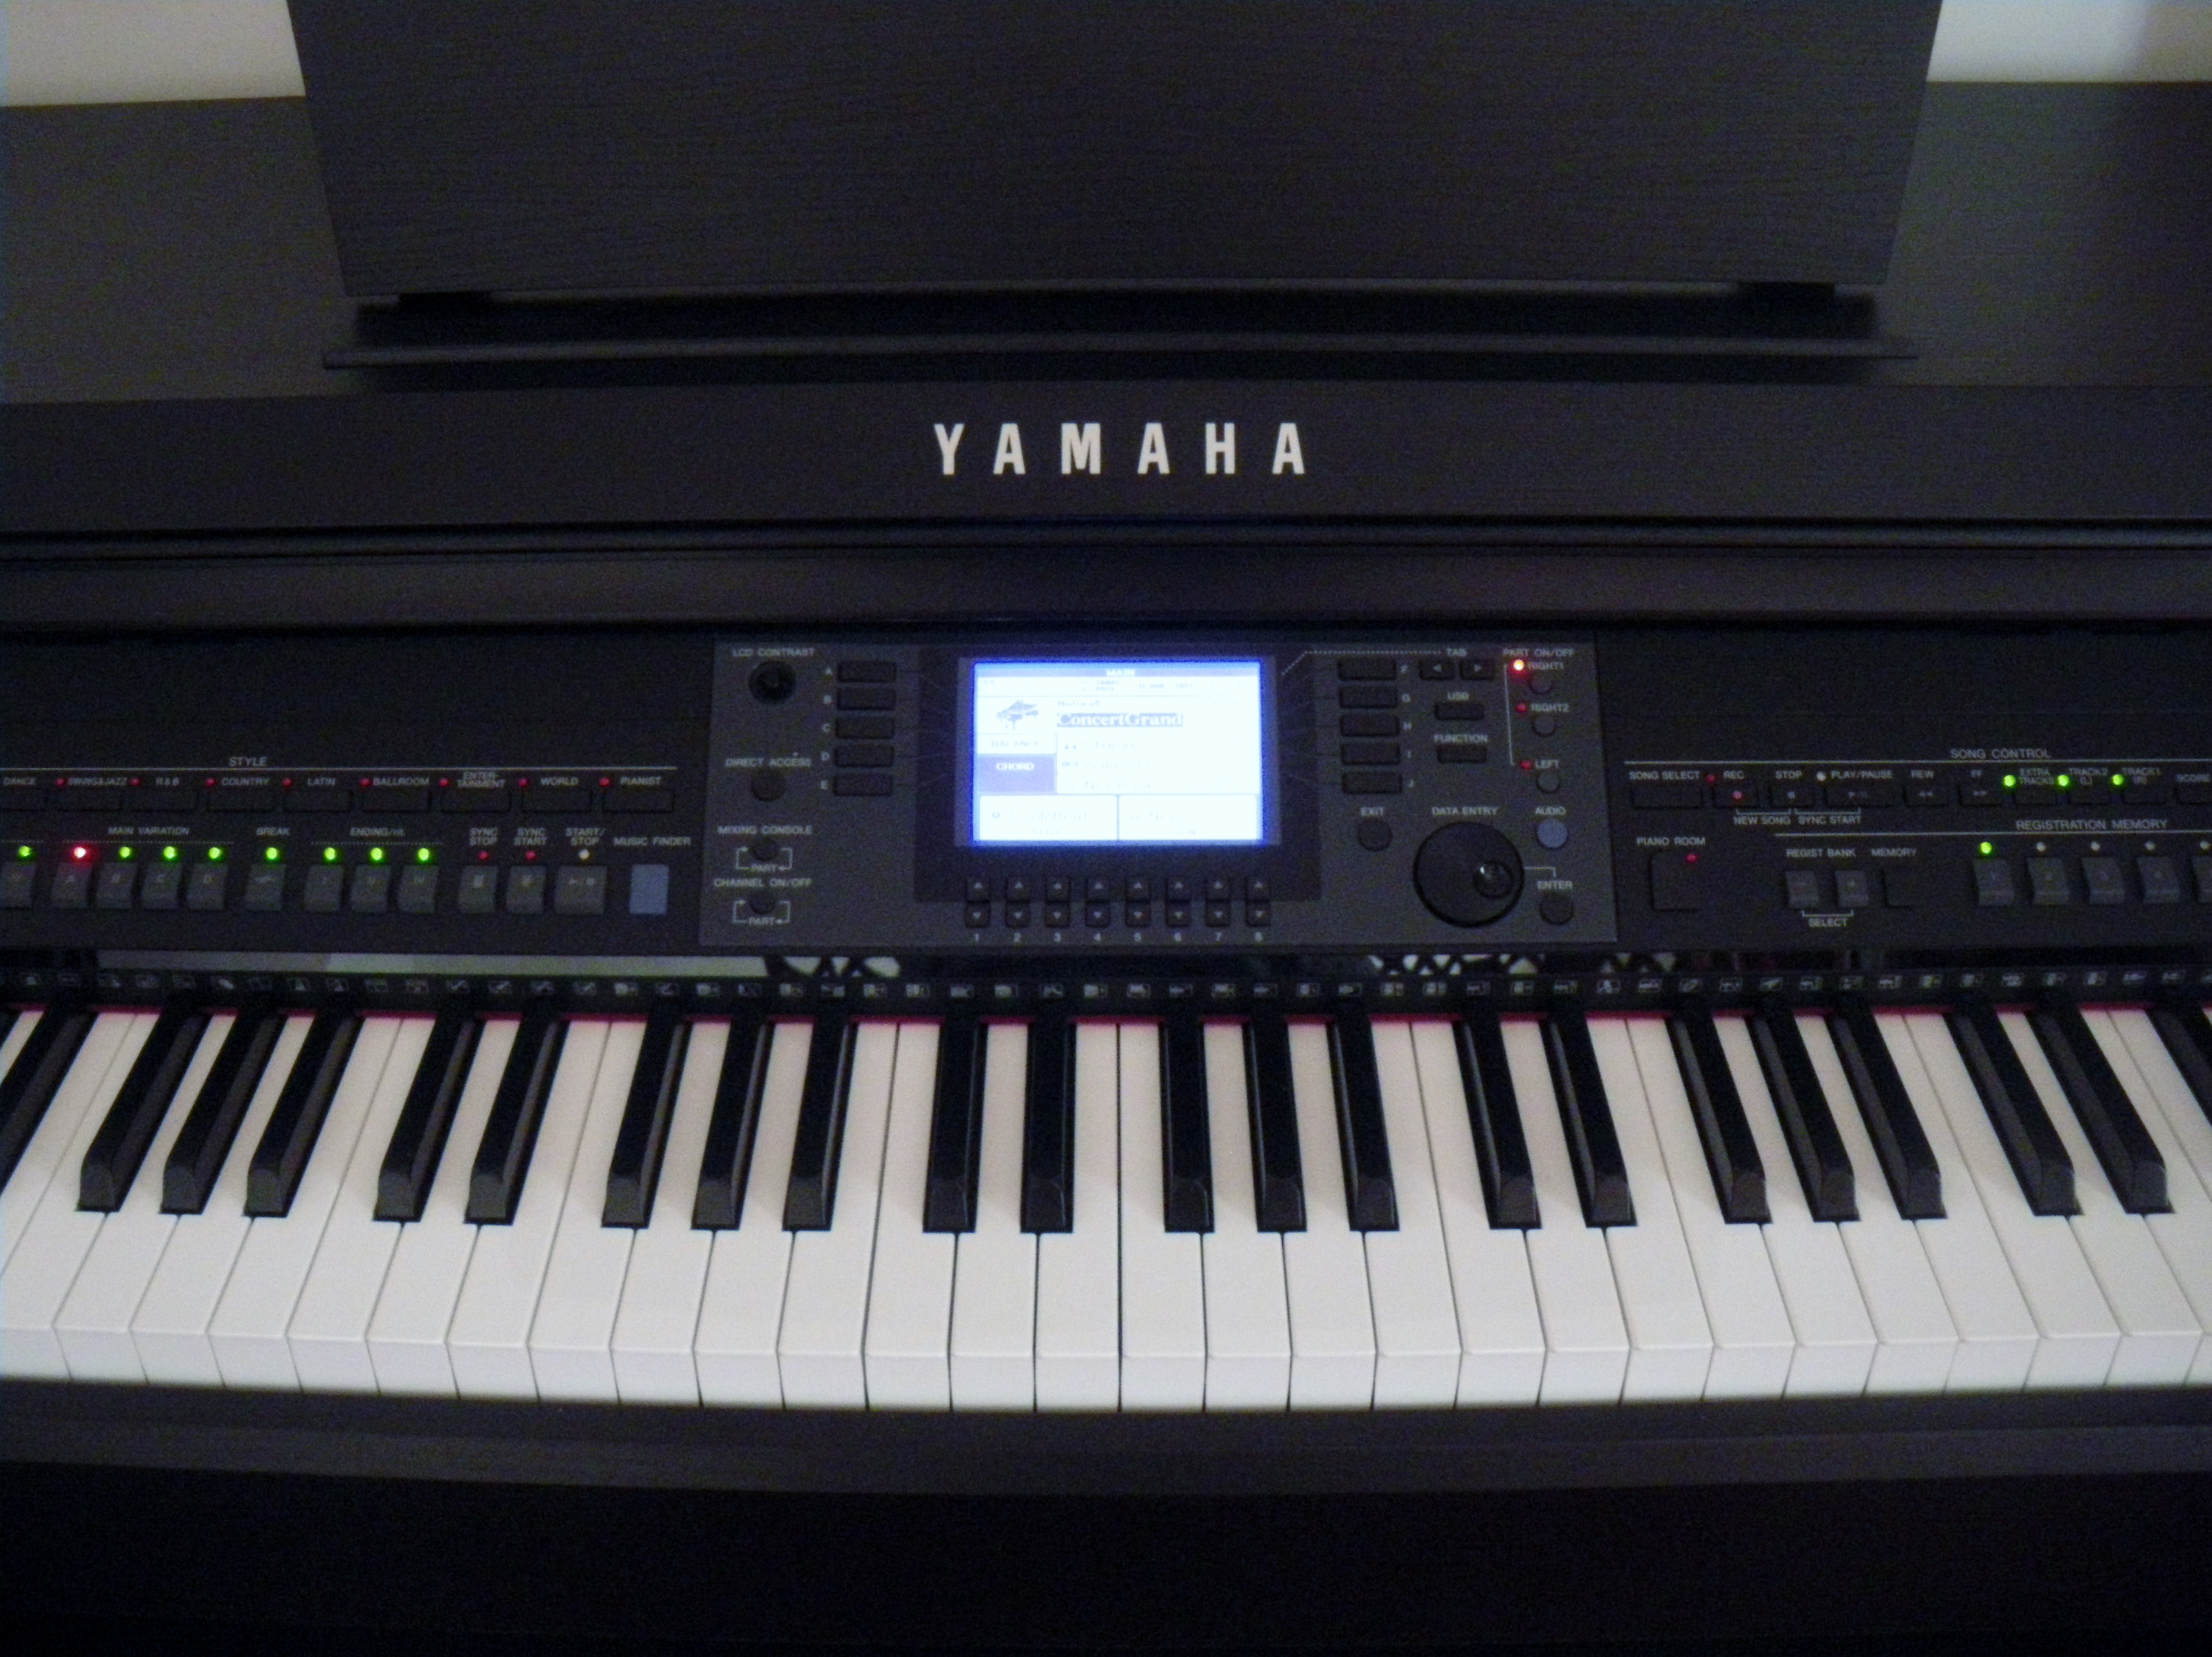 Yamaha cvp 601 image 1134410 audiofanzine for Yamaha clavinova price list